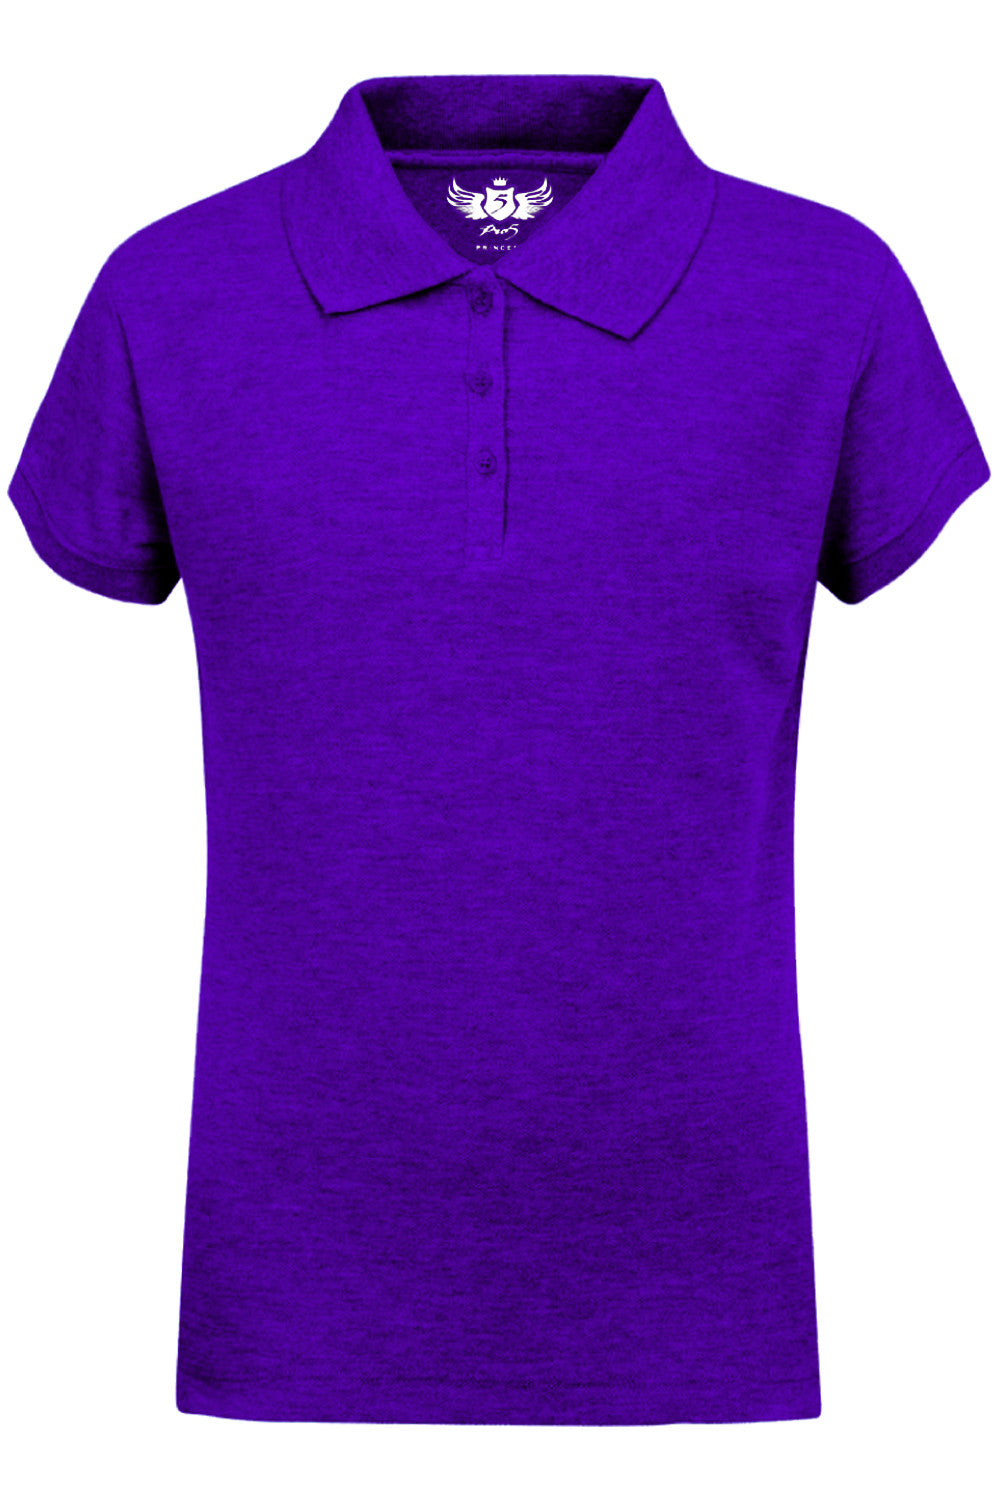 Girls Polo Top Kids School Uniform Purple